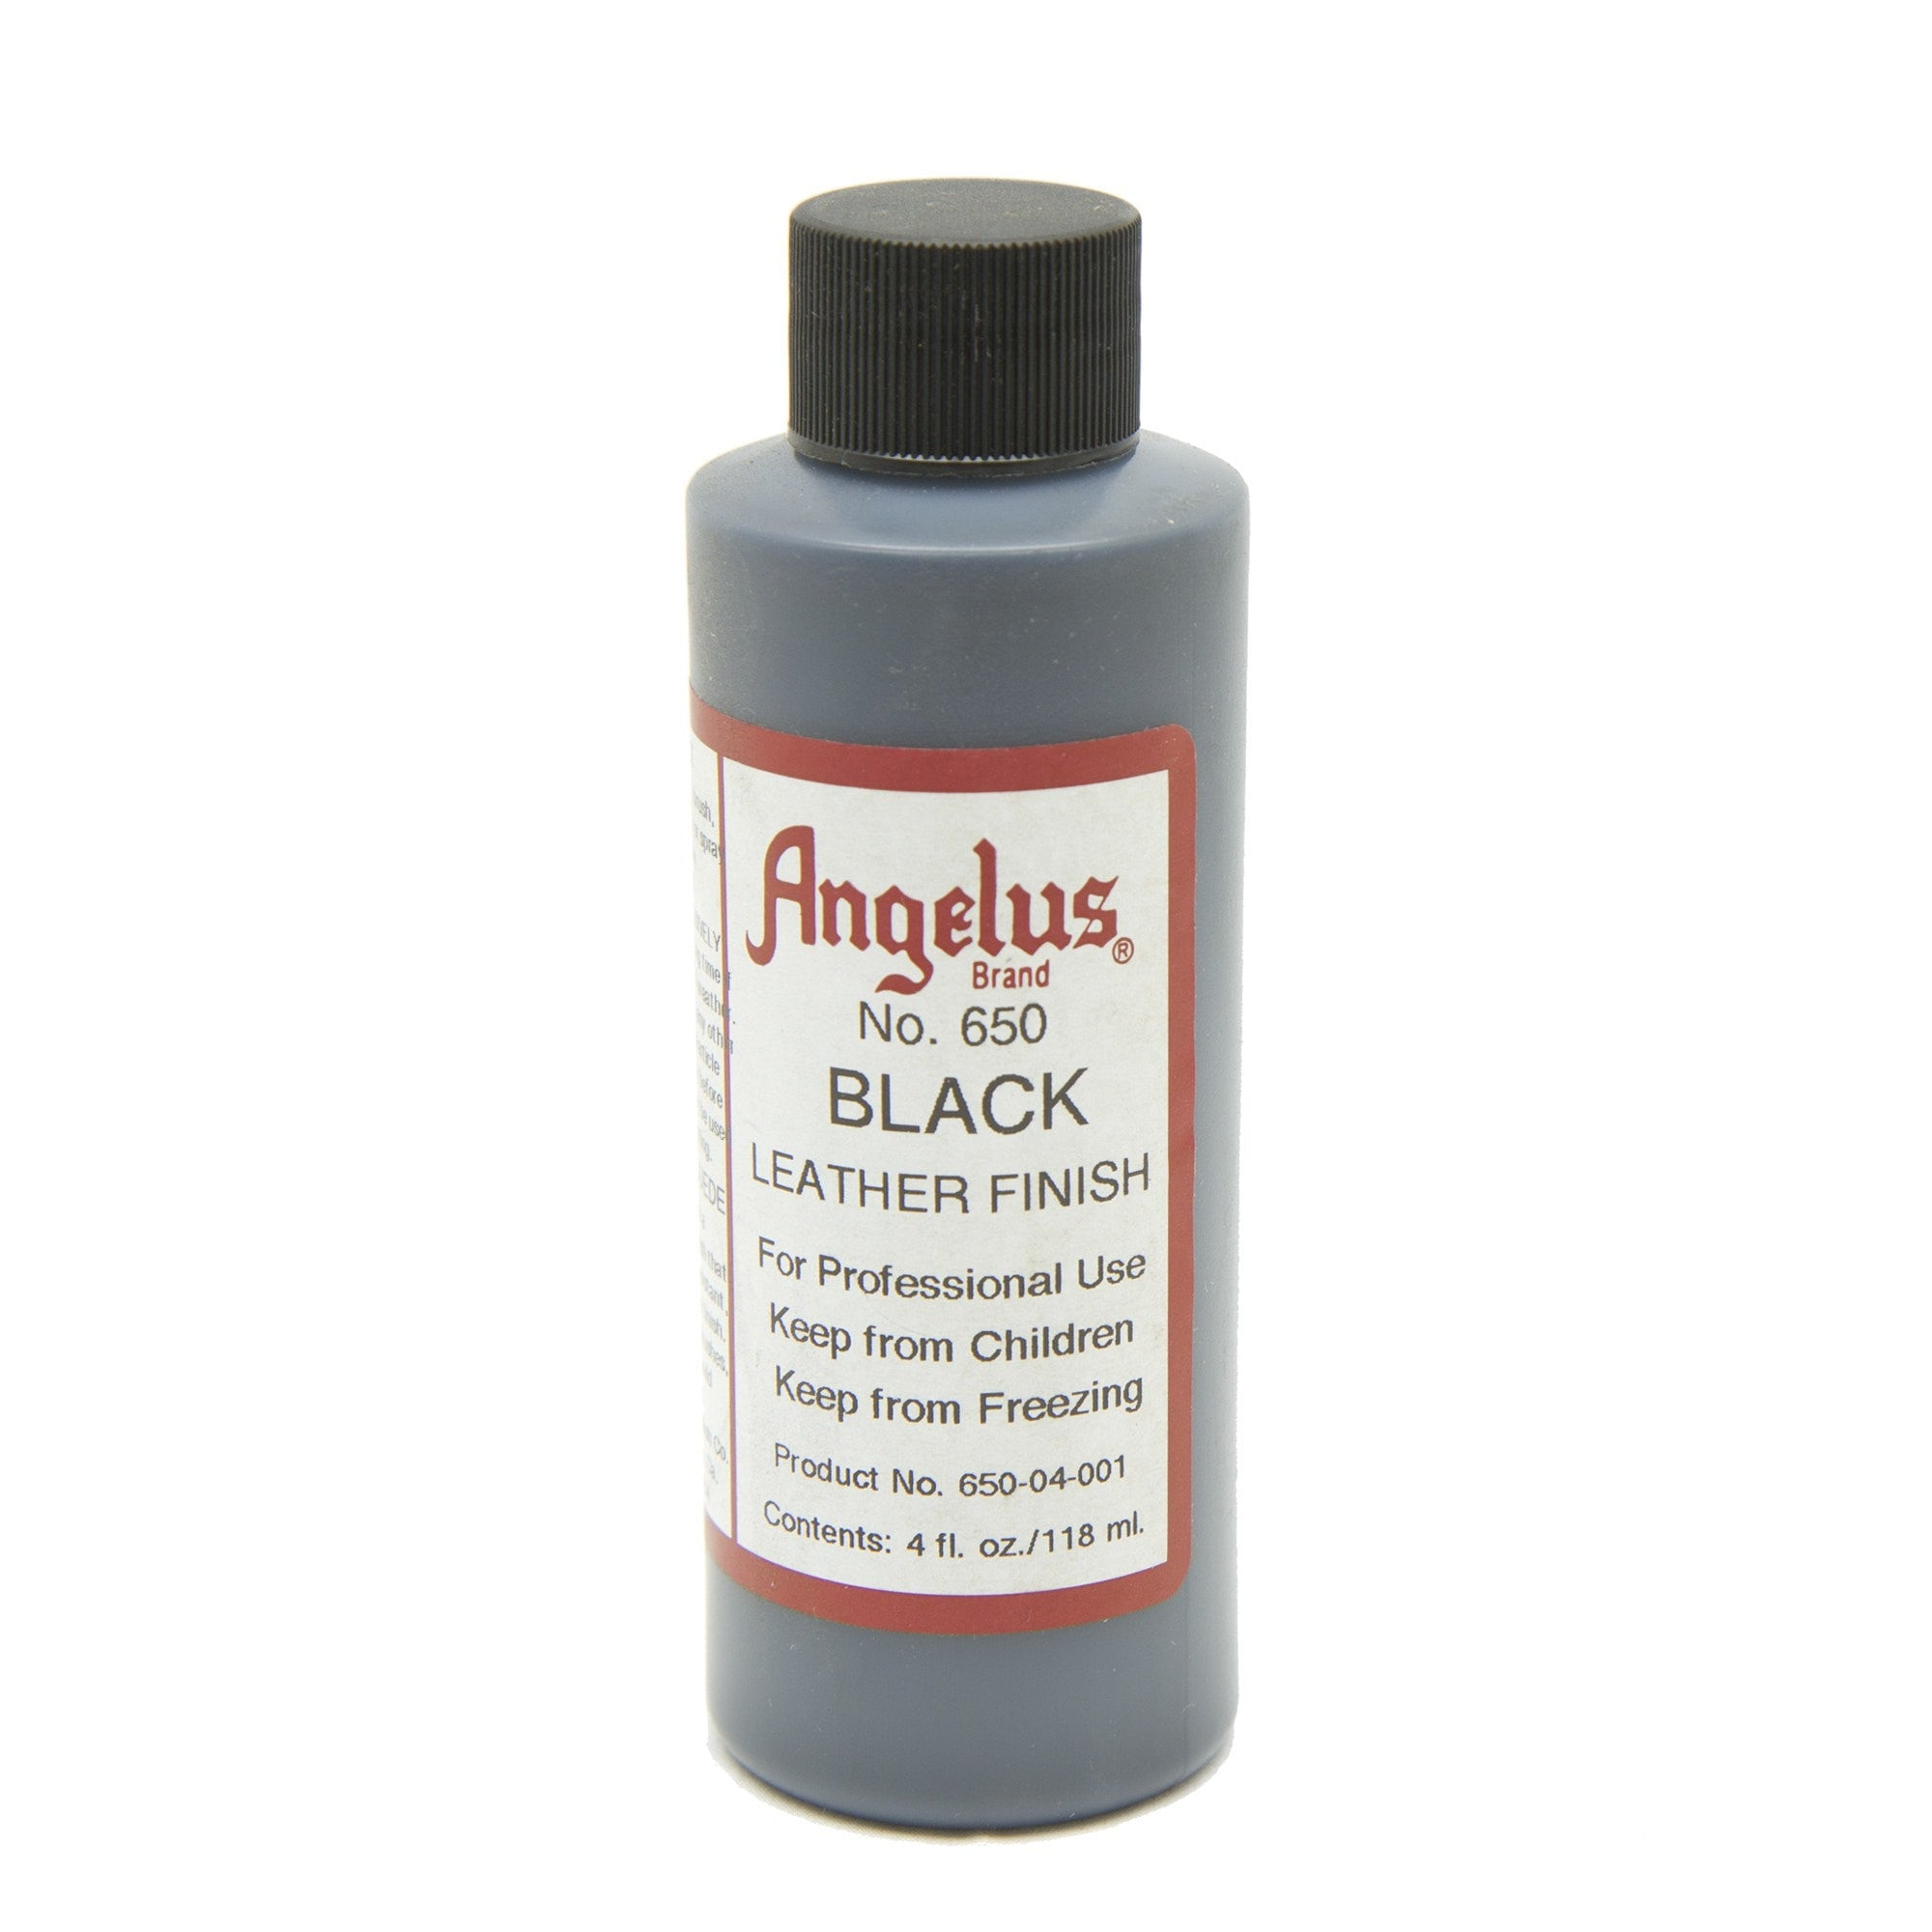 Angelus Leather Finish | Buy Finisher for Leather Shoes